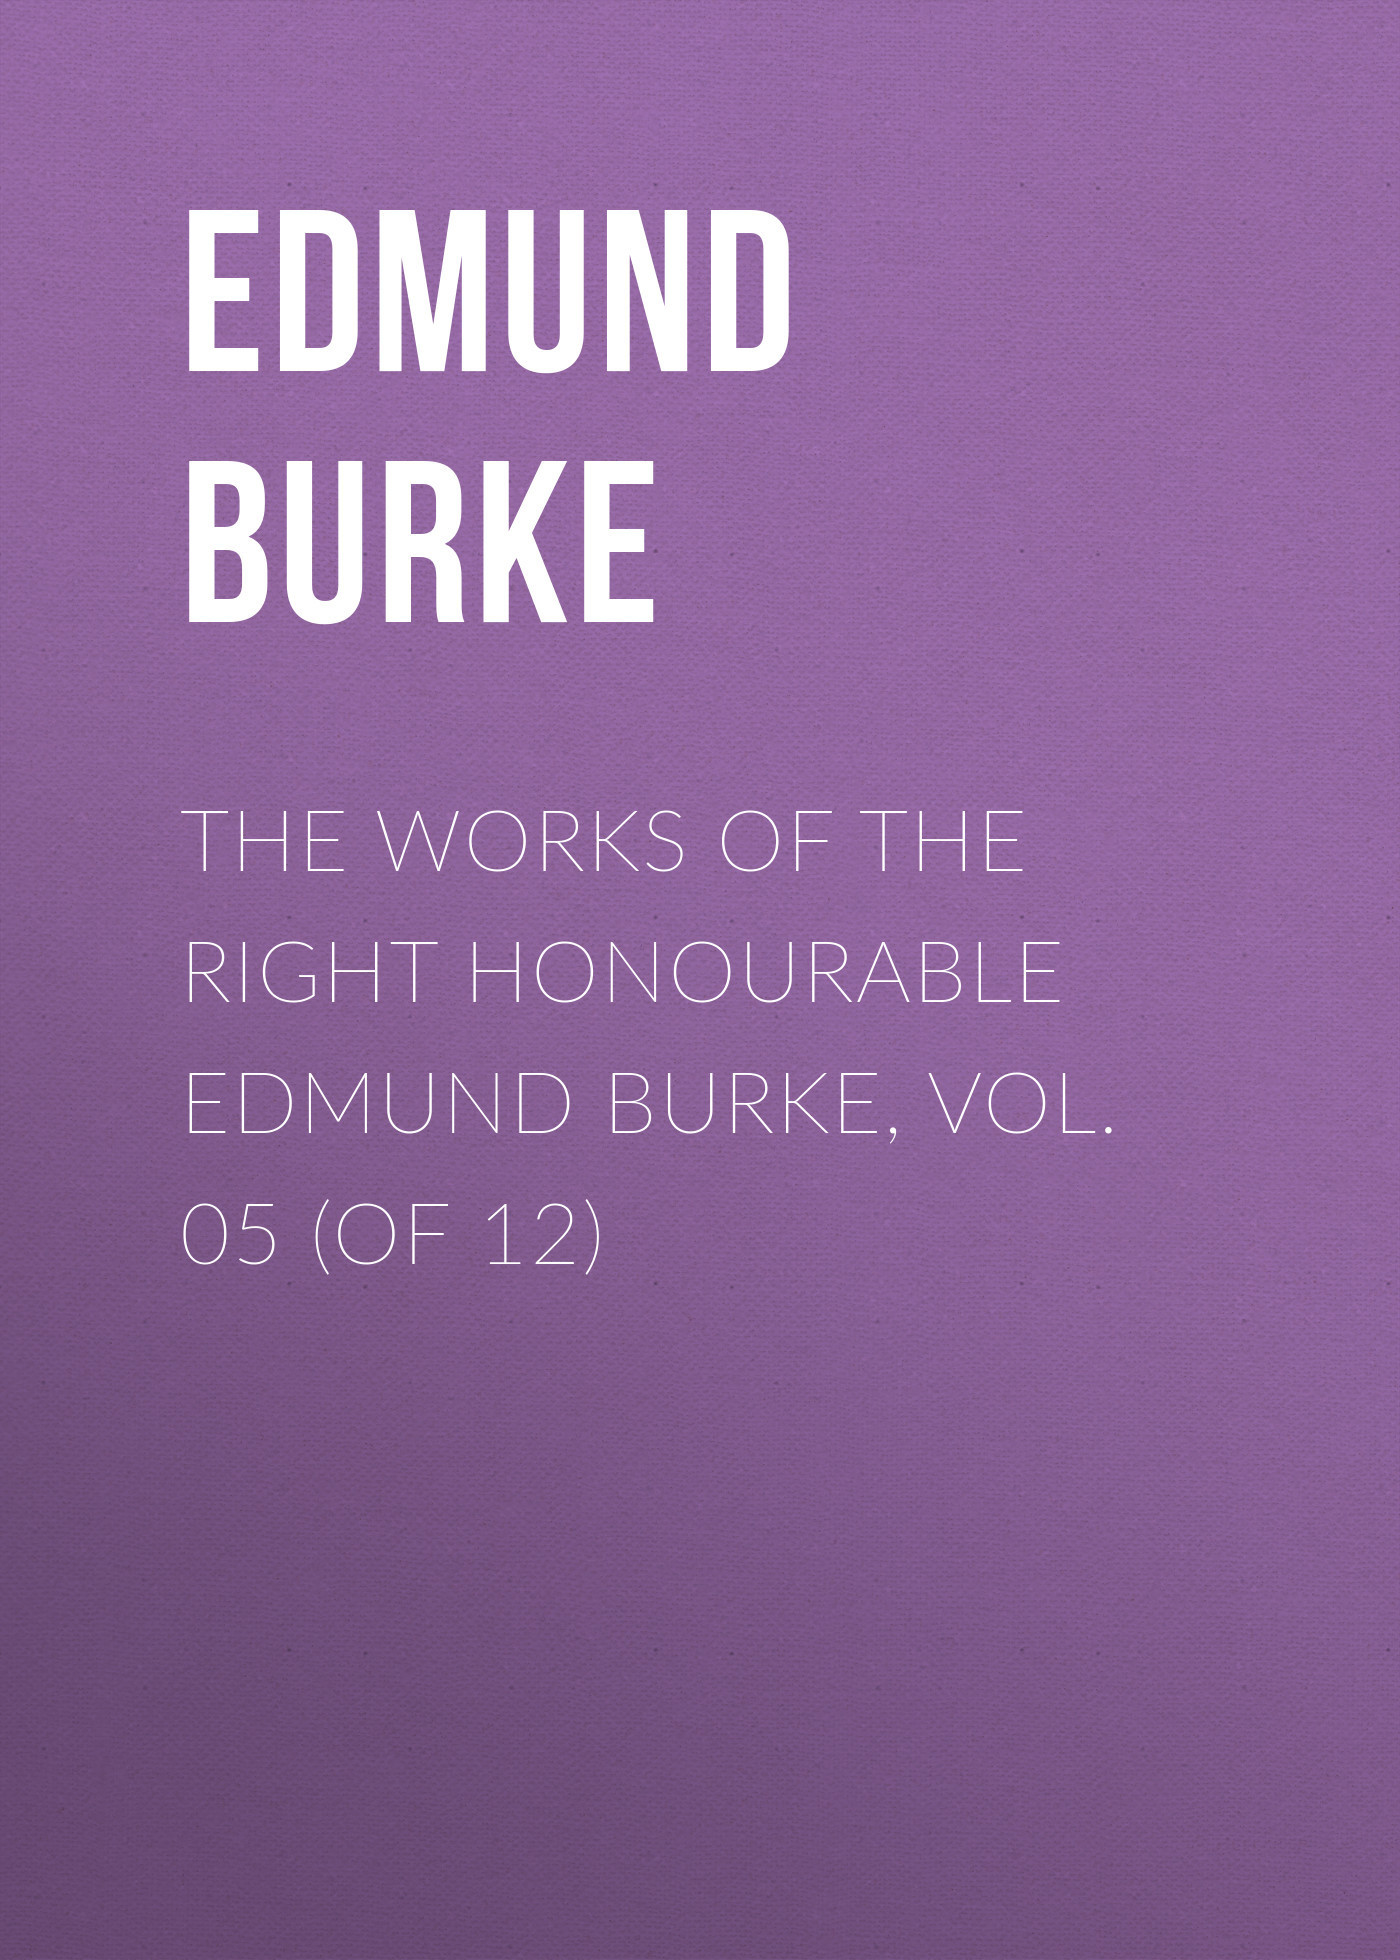 Edmund Burke The Works of the Right Honourable Edmund Burke, Vol. 05 (of 12) edmund burke the works of the right honourable edmund burke vol 09 of 12